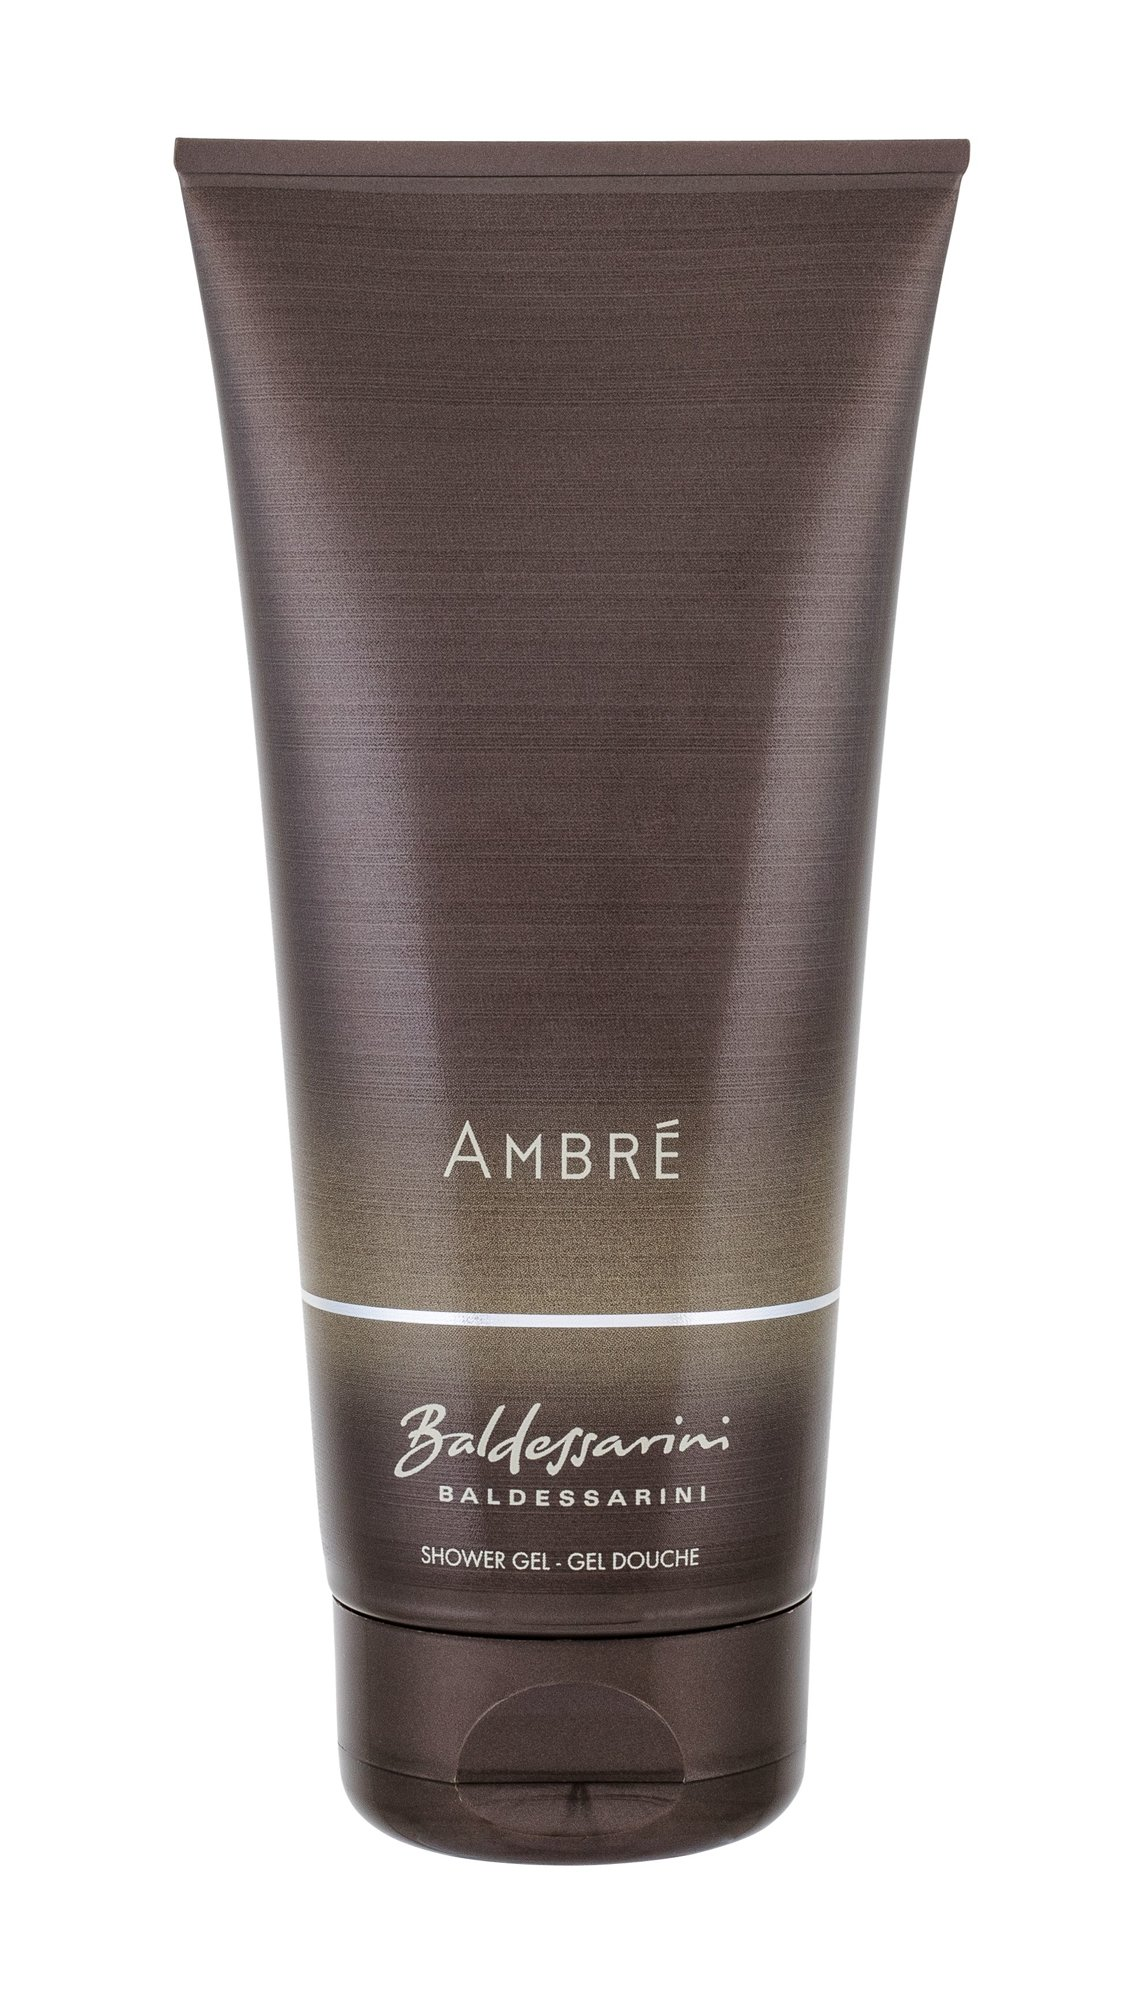 Baldessarini Ambré Shower gel 200ml